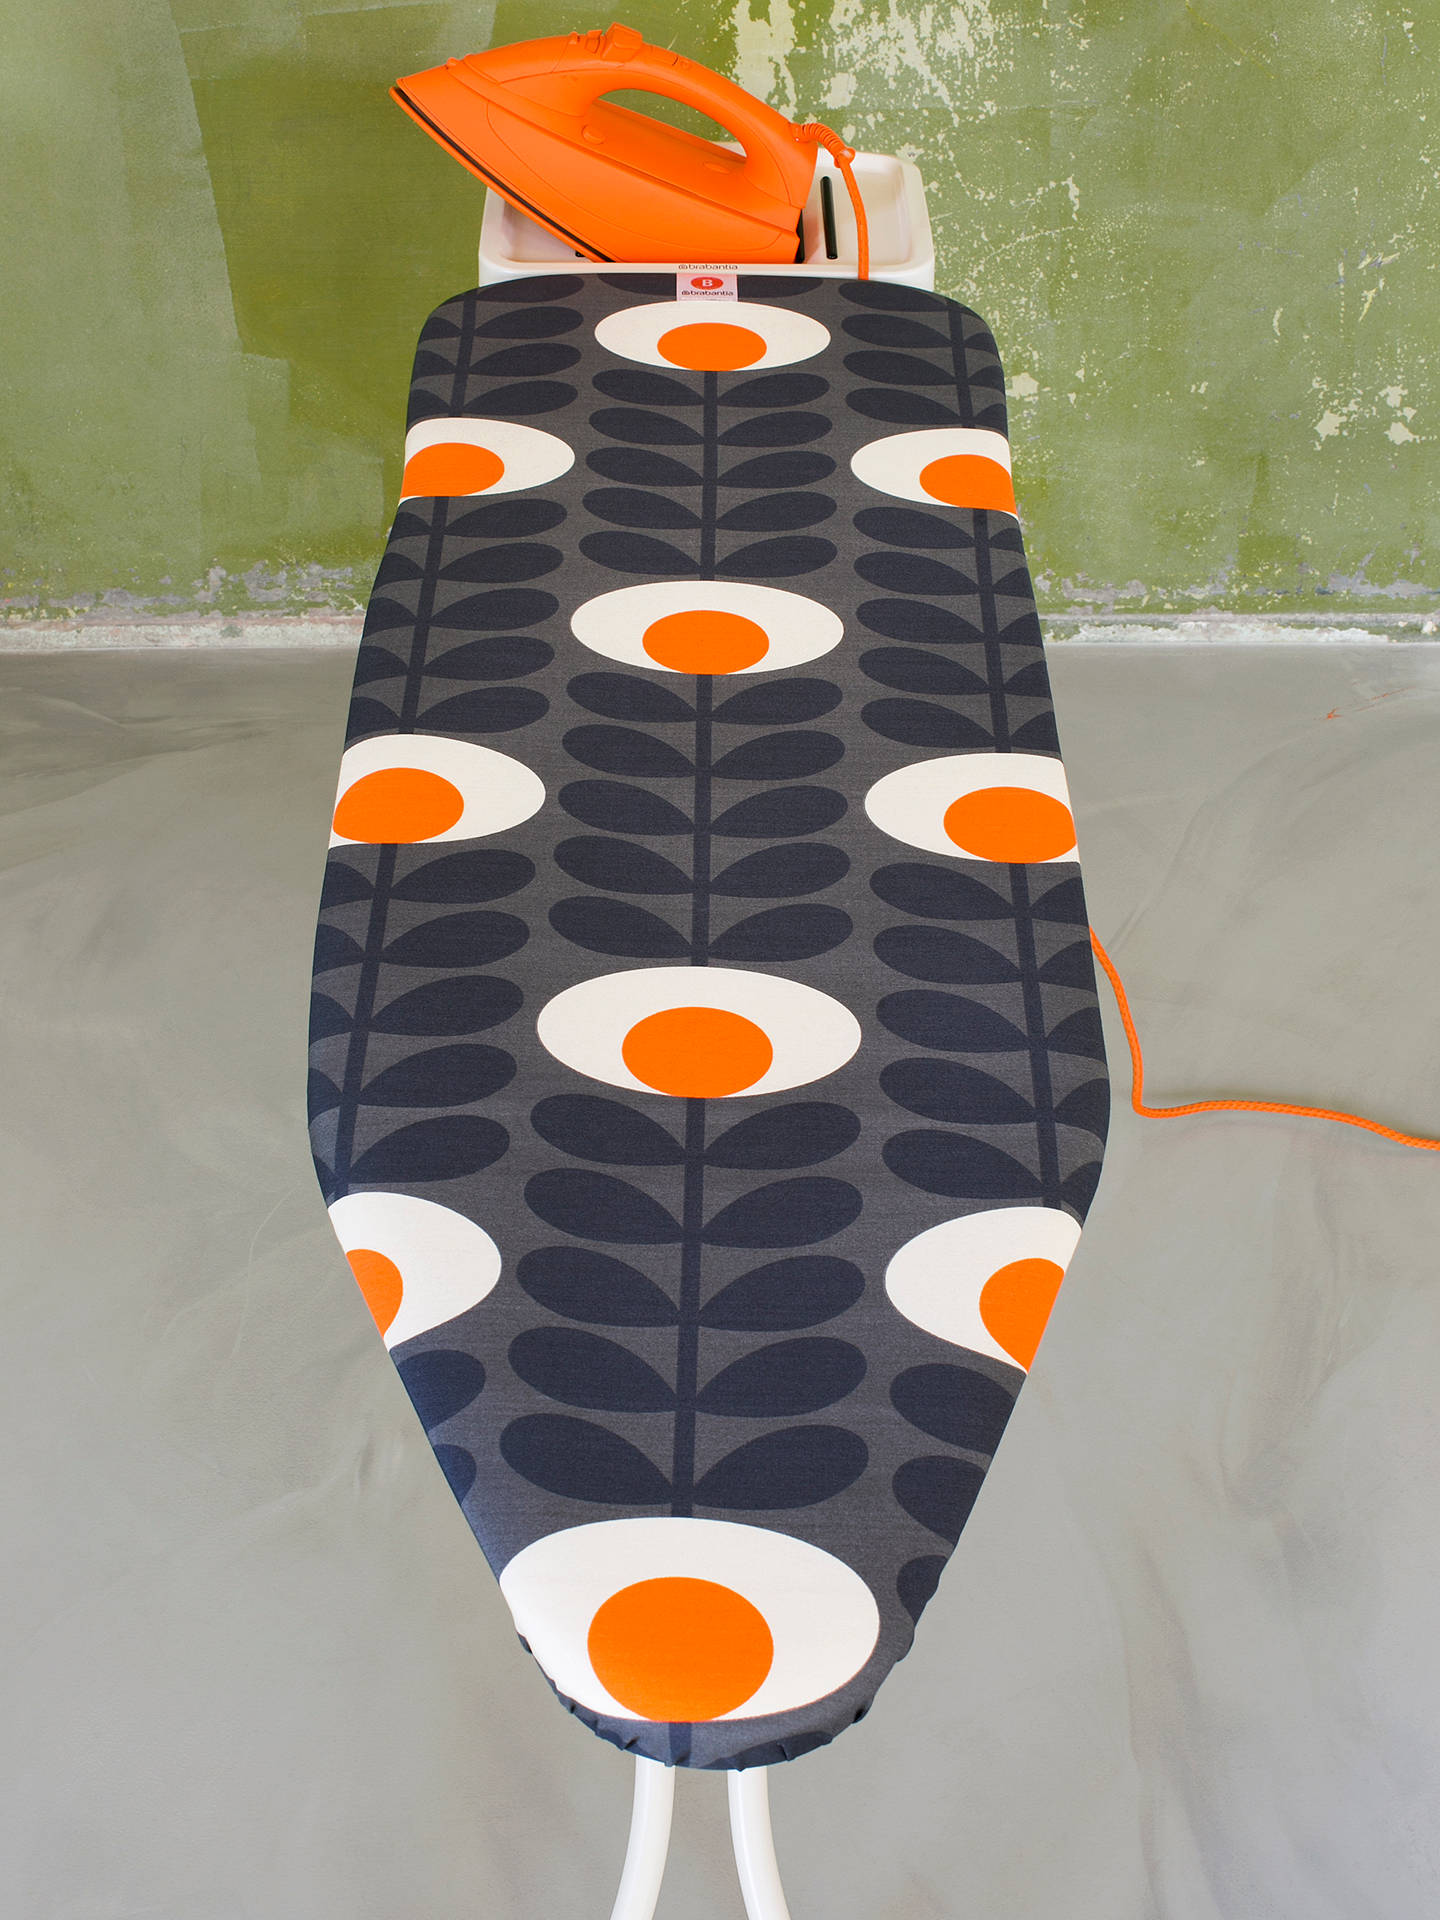 Buy Brabantia Orla Kiely Flower Oval Stem Ironing Board, L124 x W38cm Online at johnlewis.com